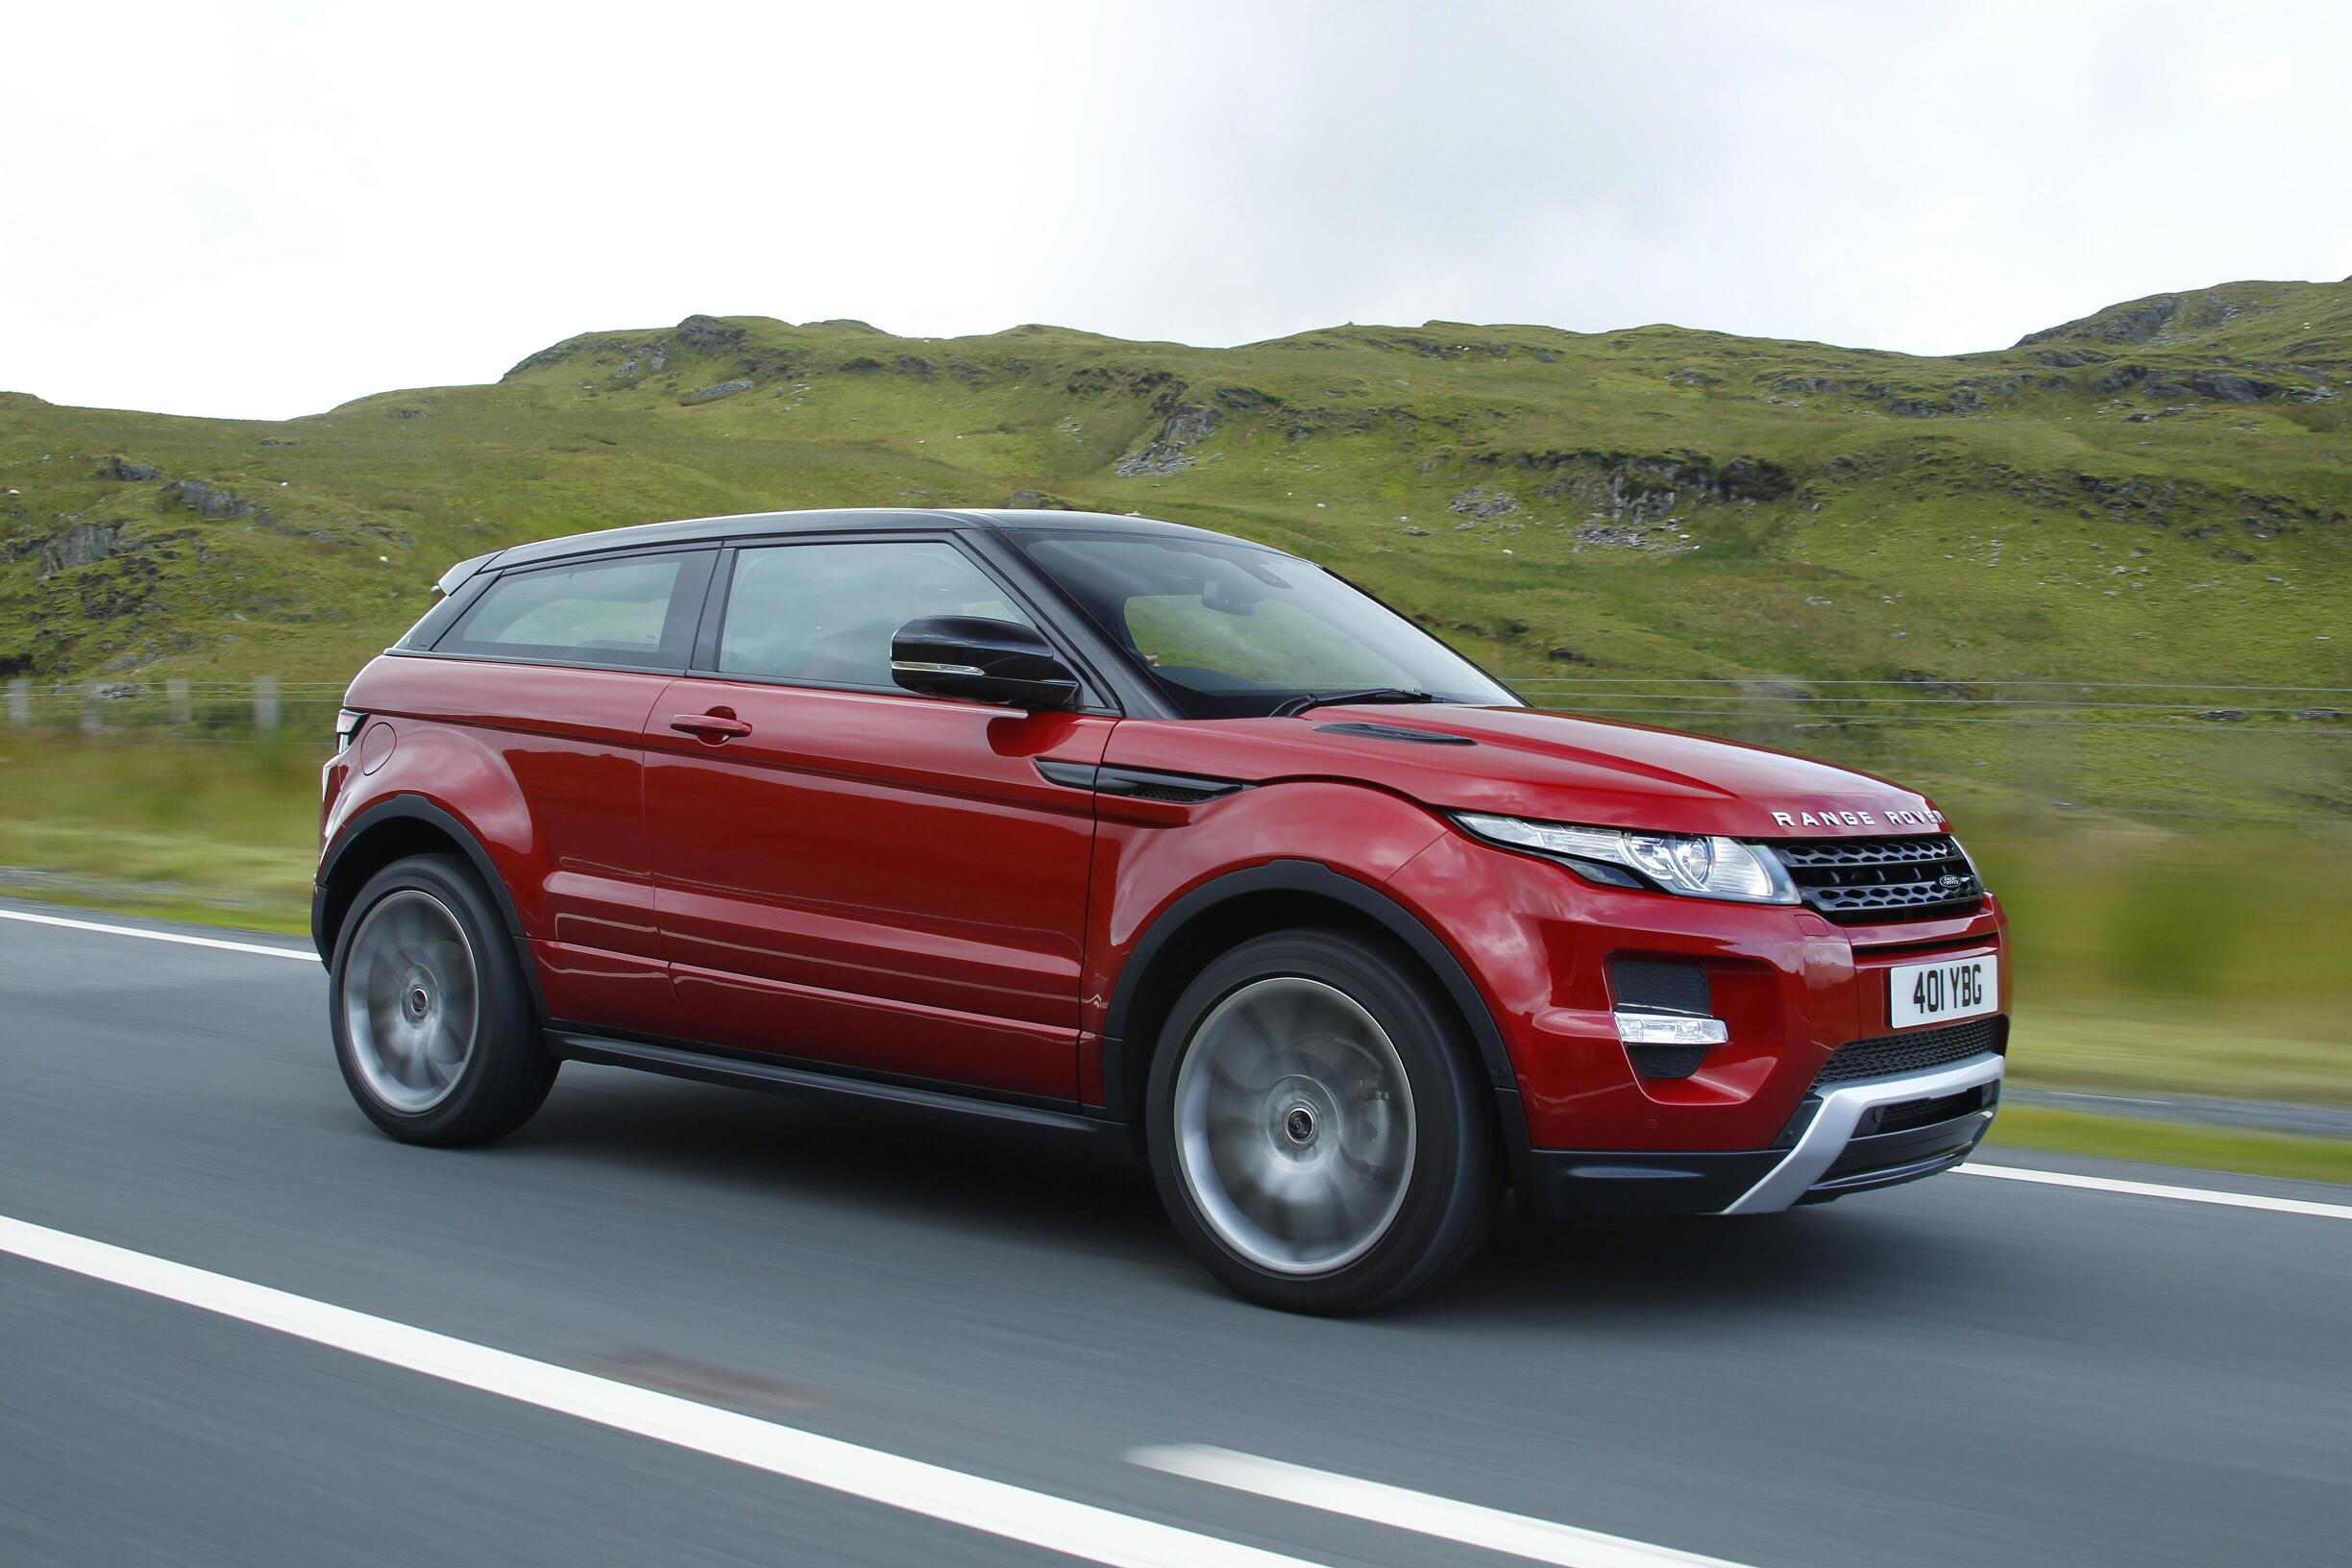 RIP 3 door Land Rover Range Rover Evoque goes away for 2018